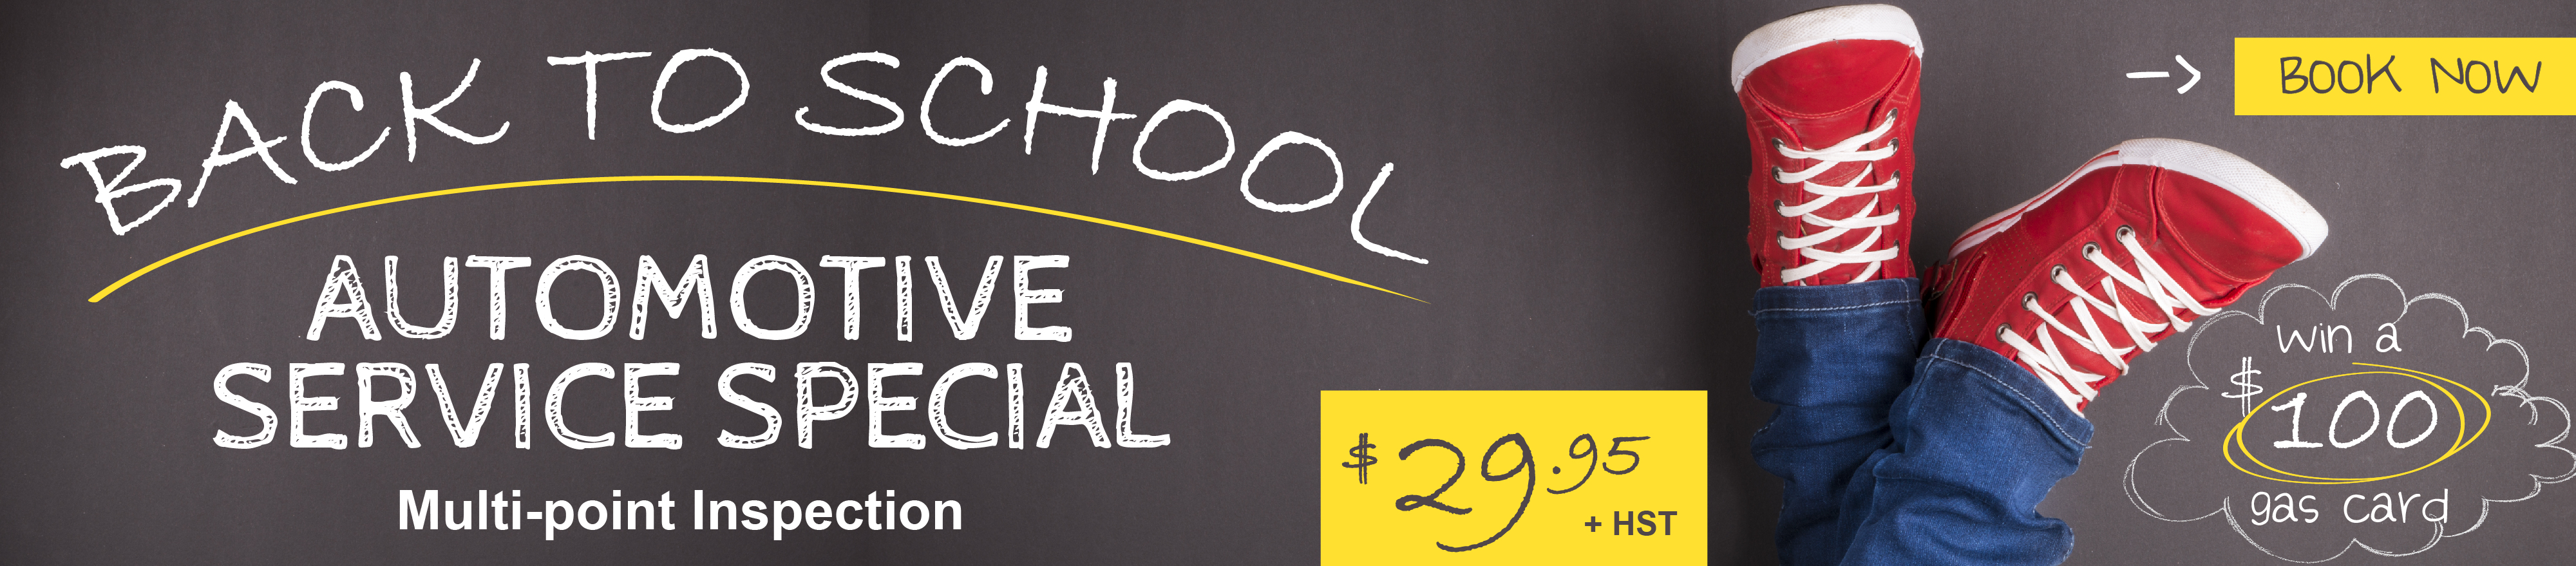 back to school automotive service special multi-point inspection